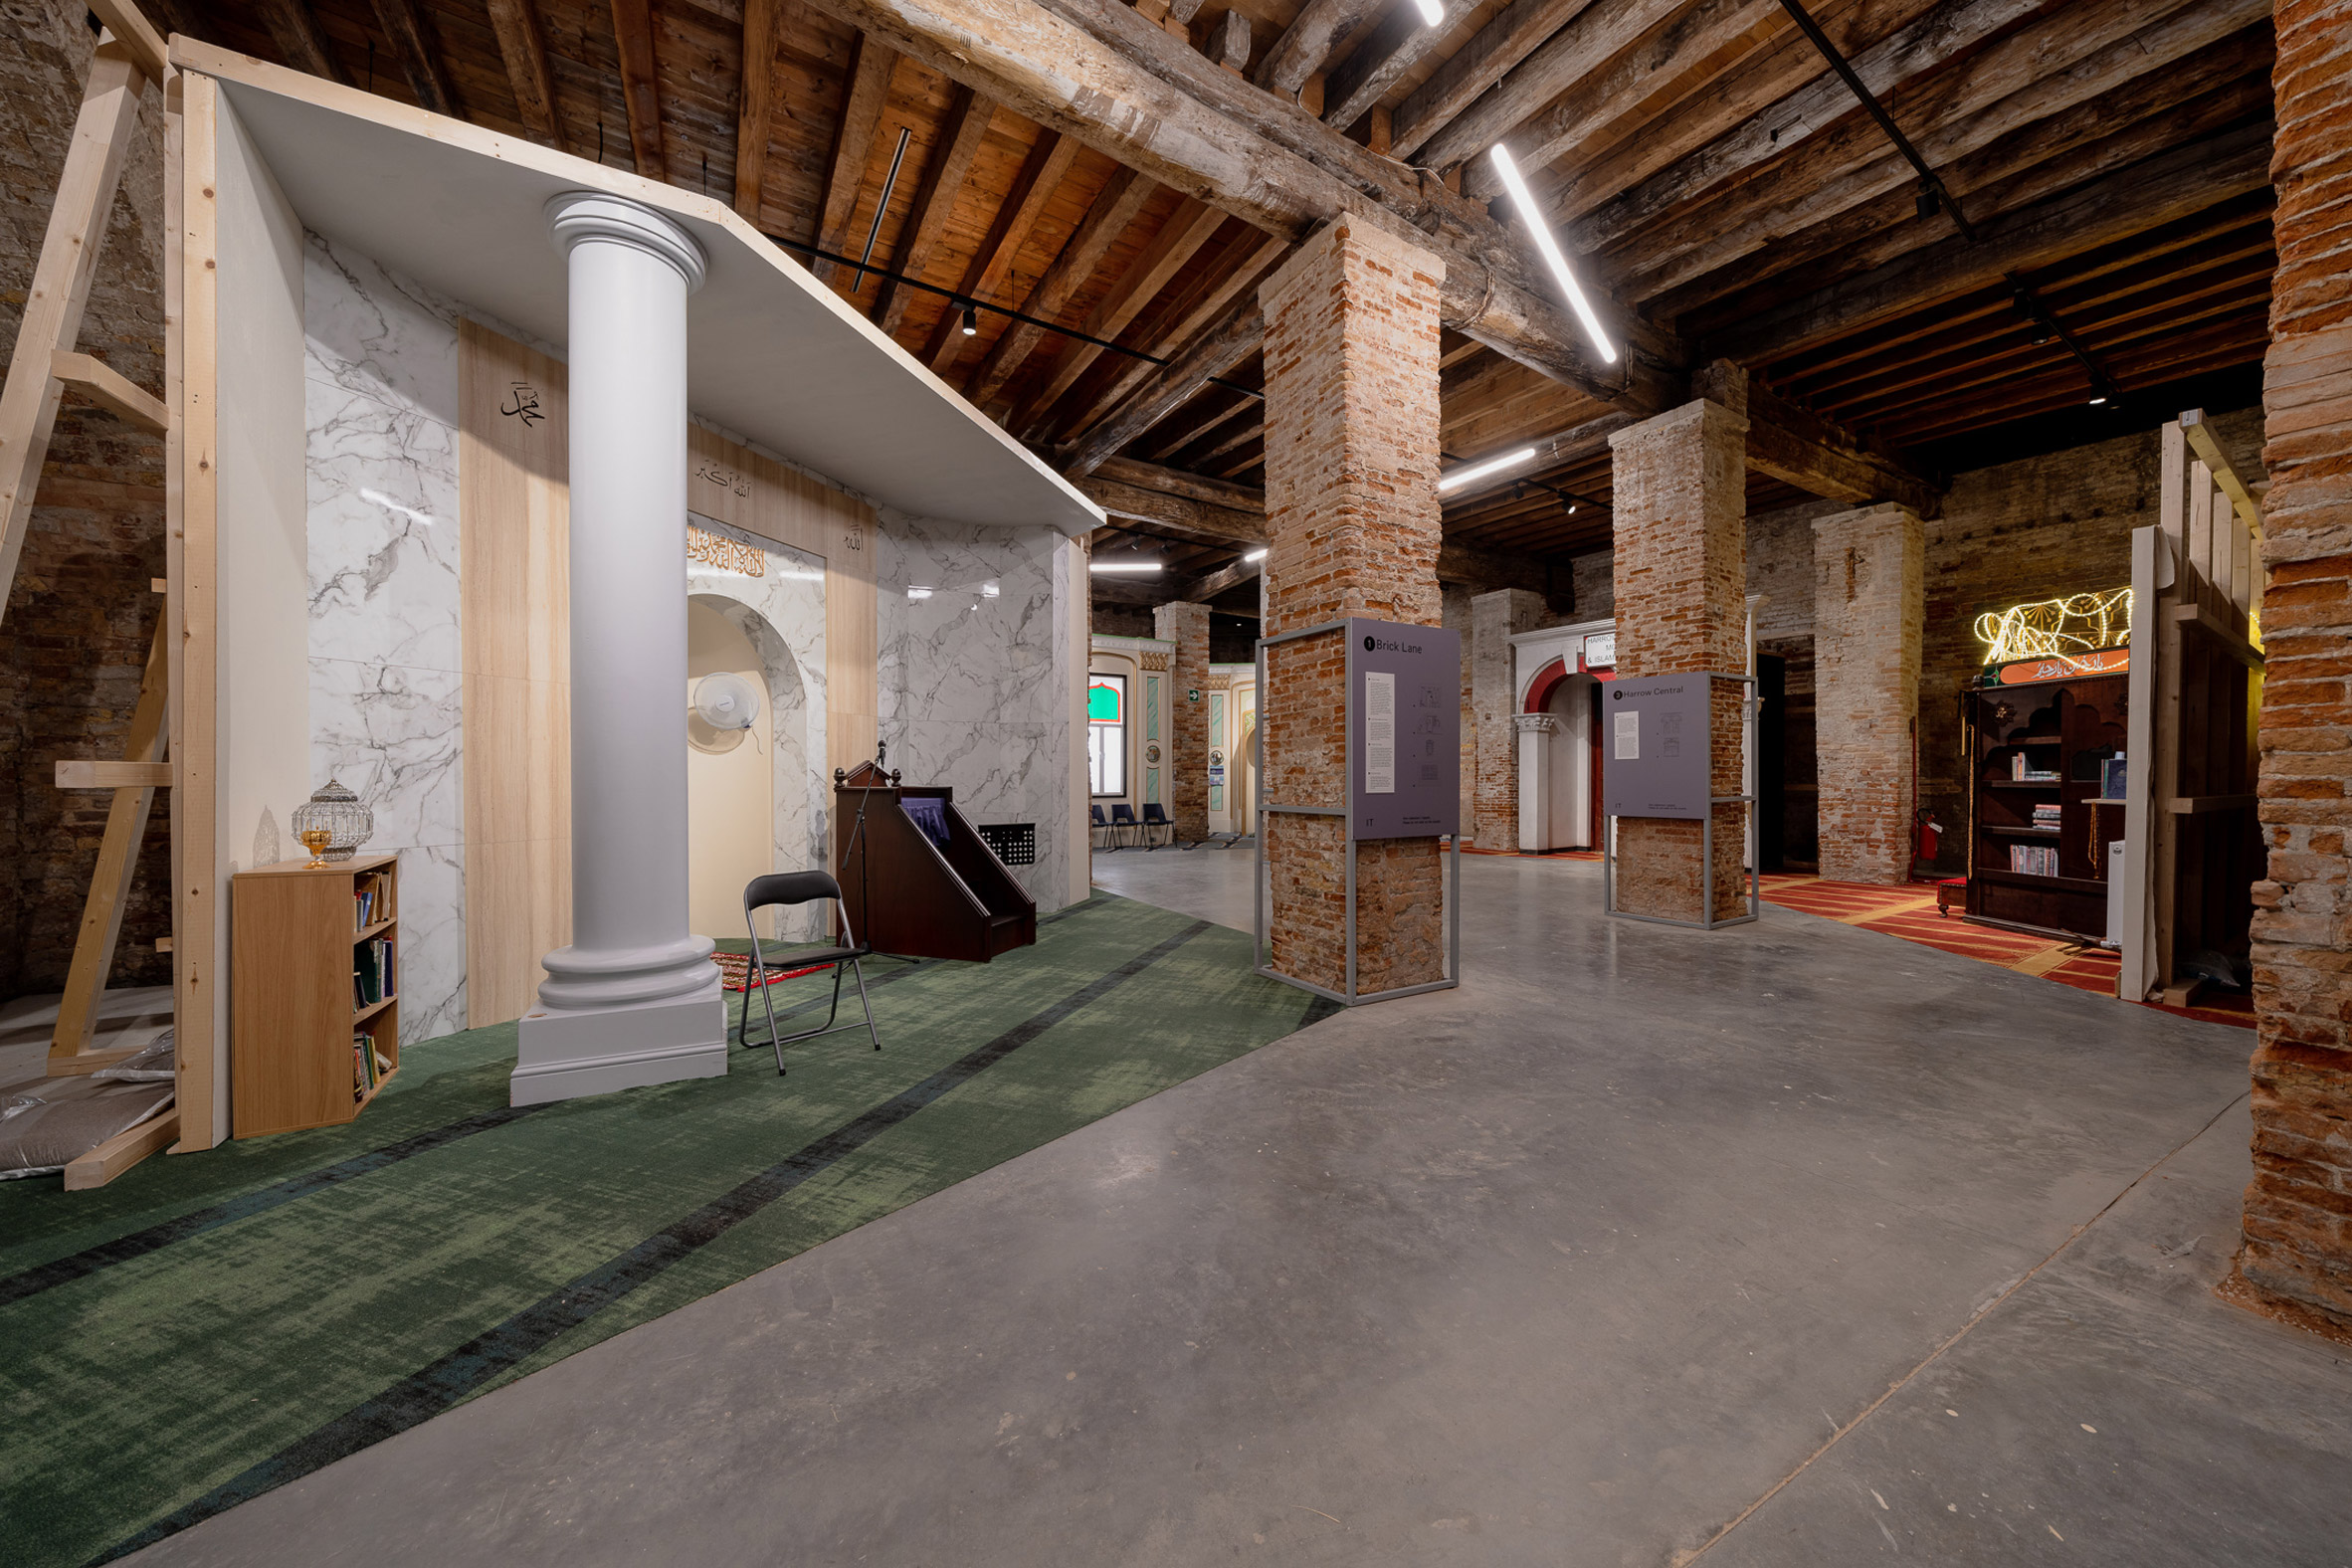 The installations sit atop carpeted zones